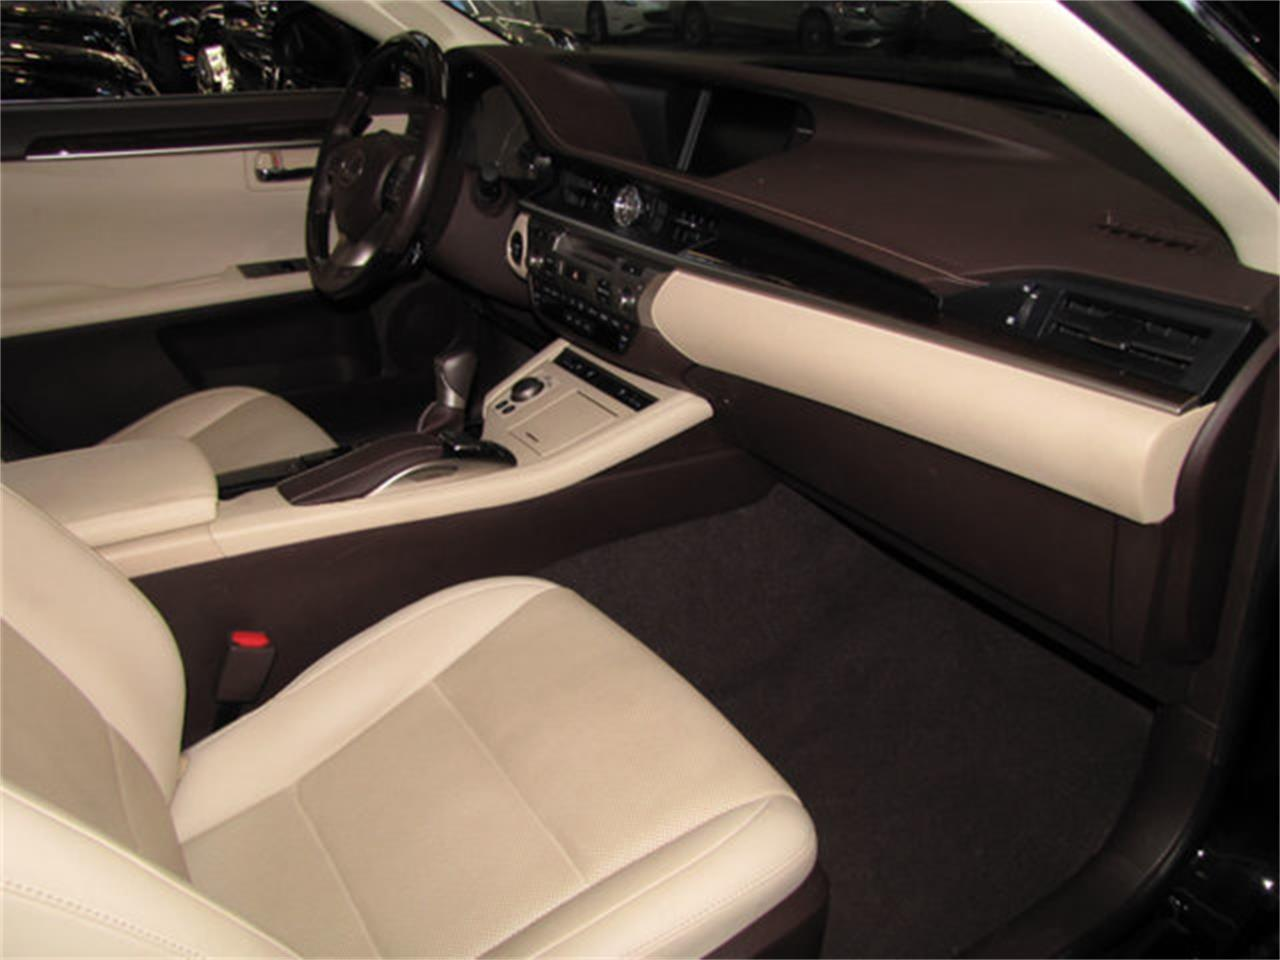 Fabulous 2016 Lexus Es300 For Sale In Hollywood Ca Classiccarsbay Com Gmtry Best Dining Table And Chair Ideas Images Gmtryco